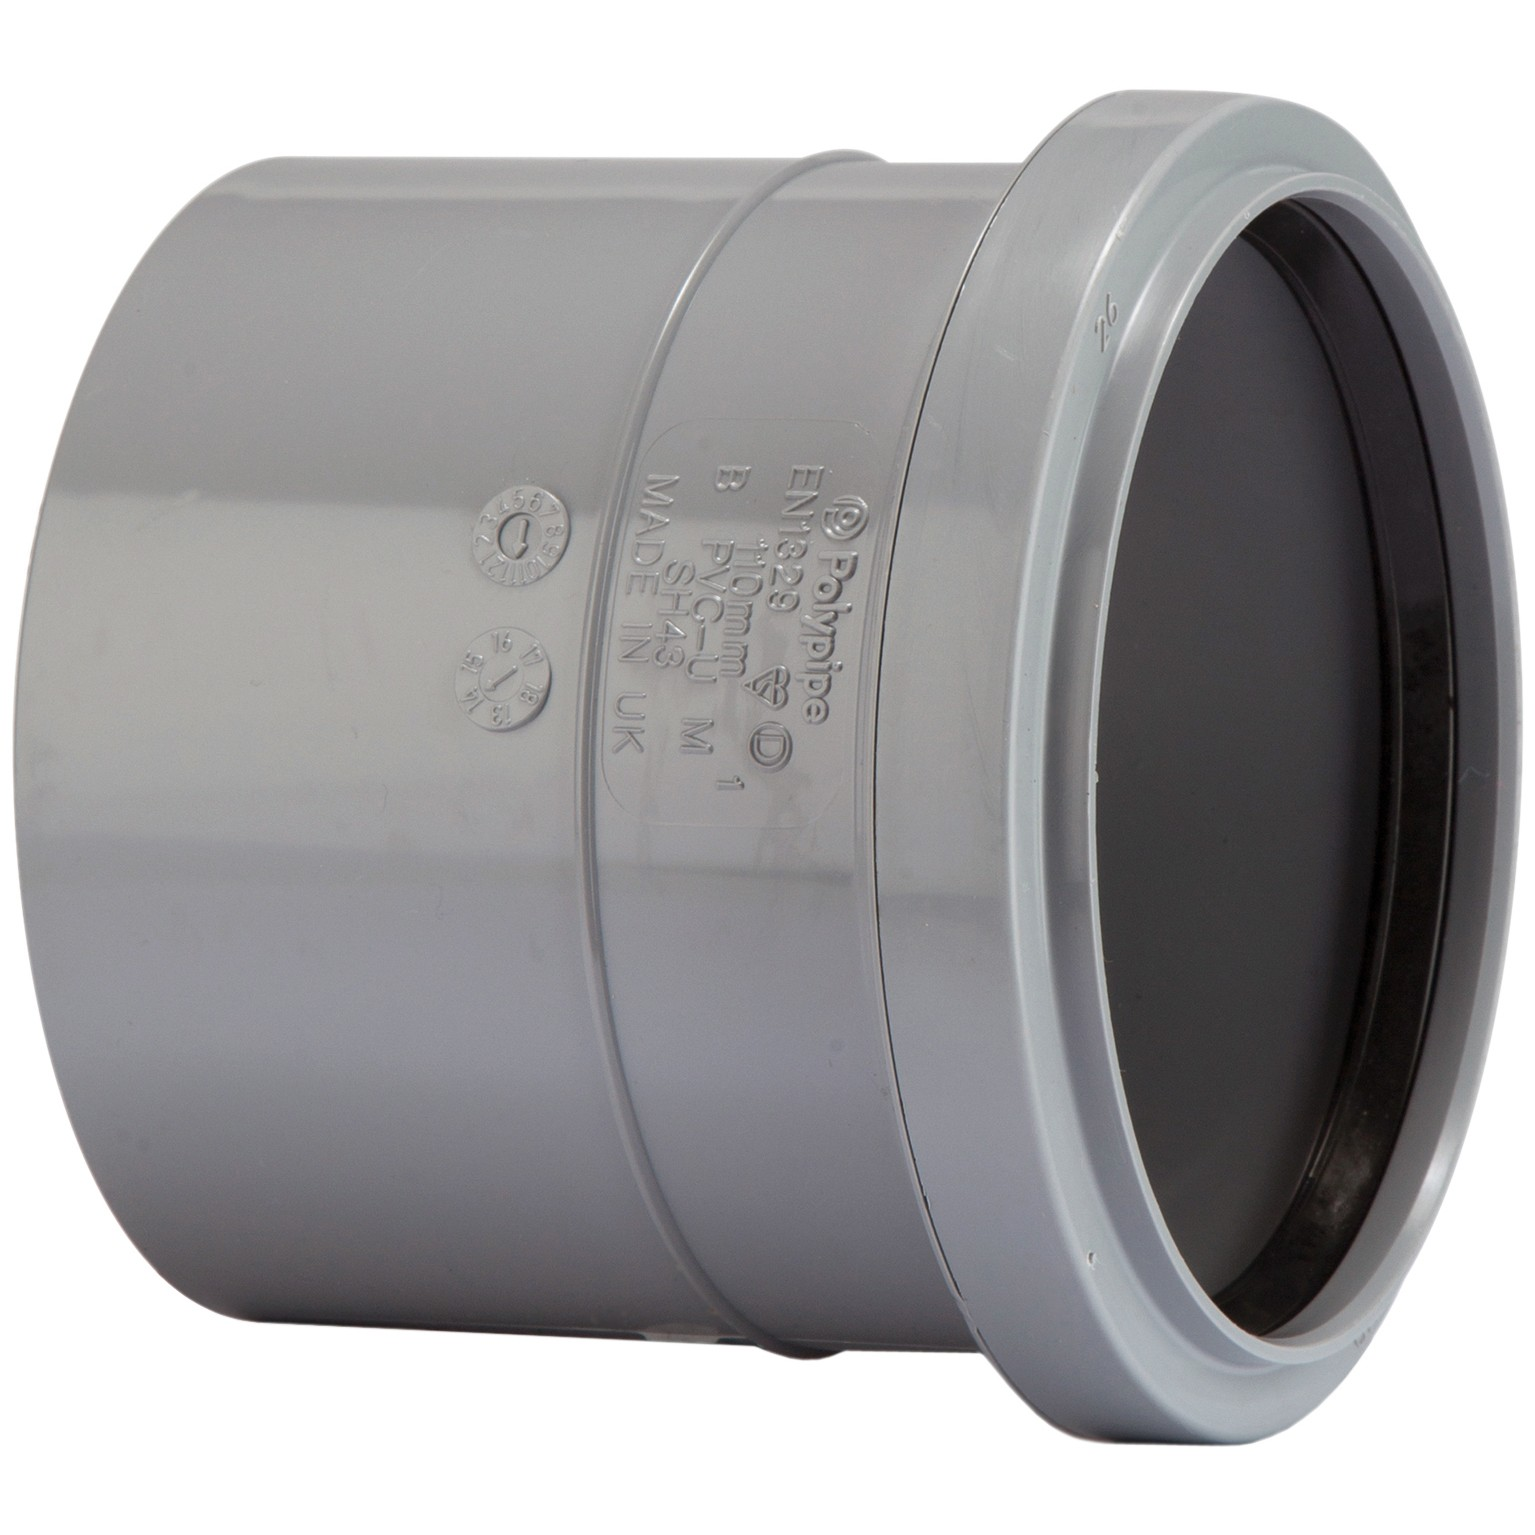 Polypipe 82mm Soil Single Socket Coupler - Grey